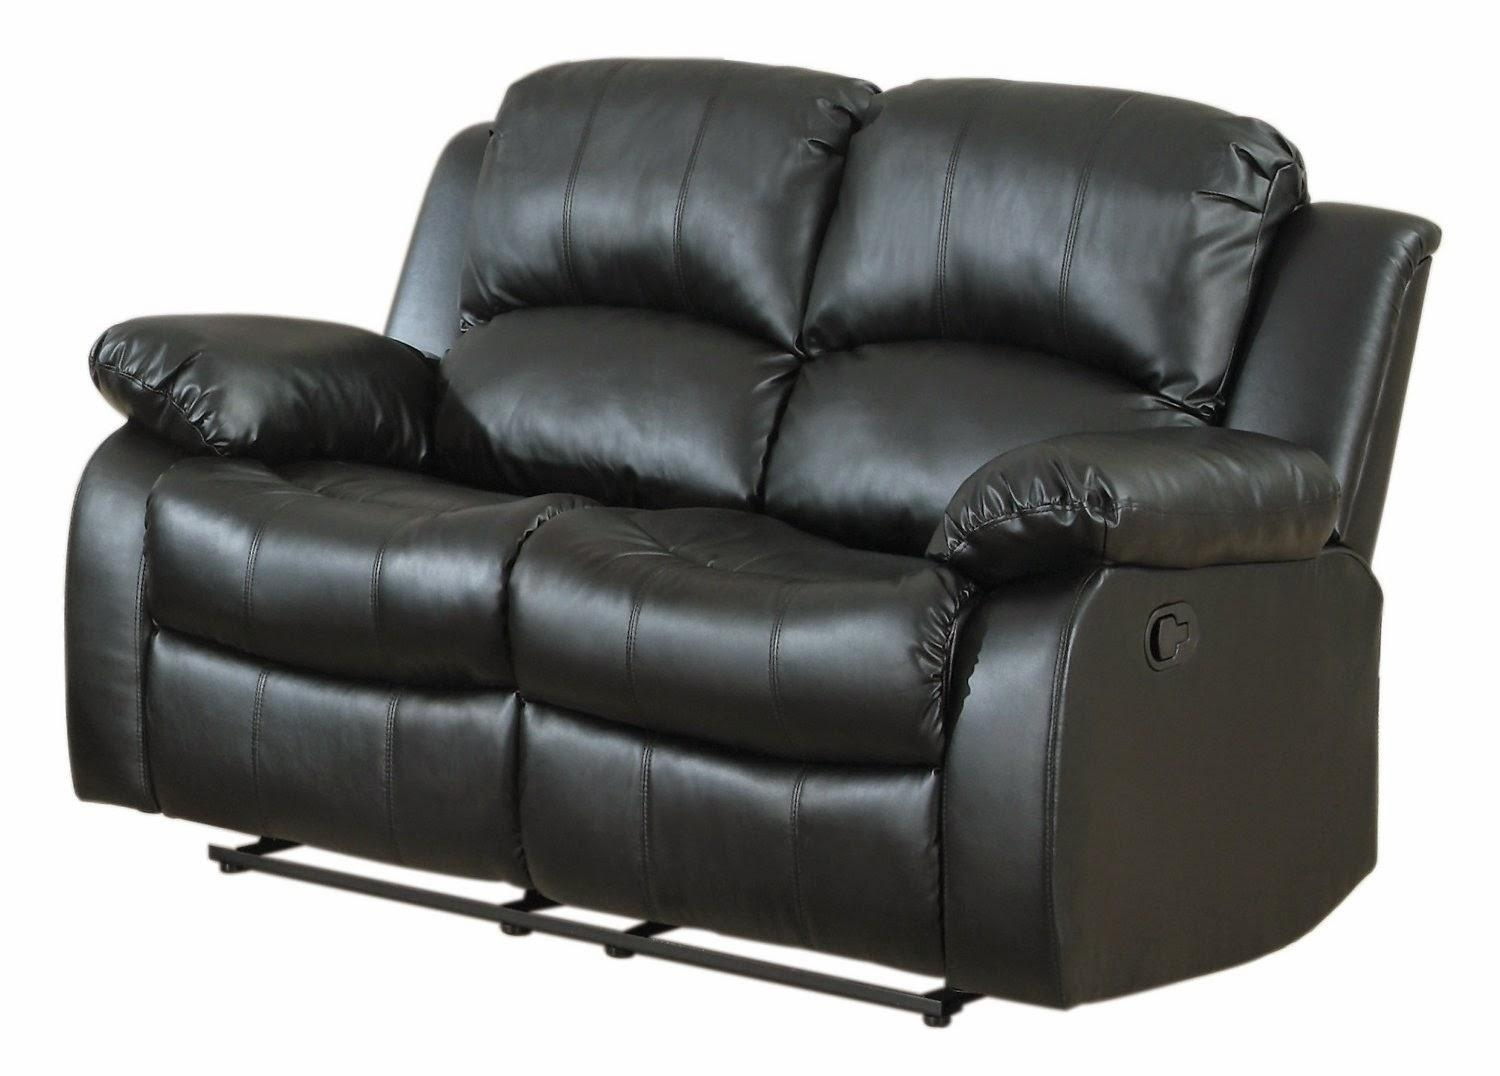 Sofas Center : Costco Leather Reclining Sofa Sofas And With Berkline Recliner Sofas (View 10 of 20)